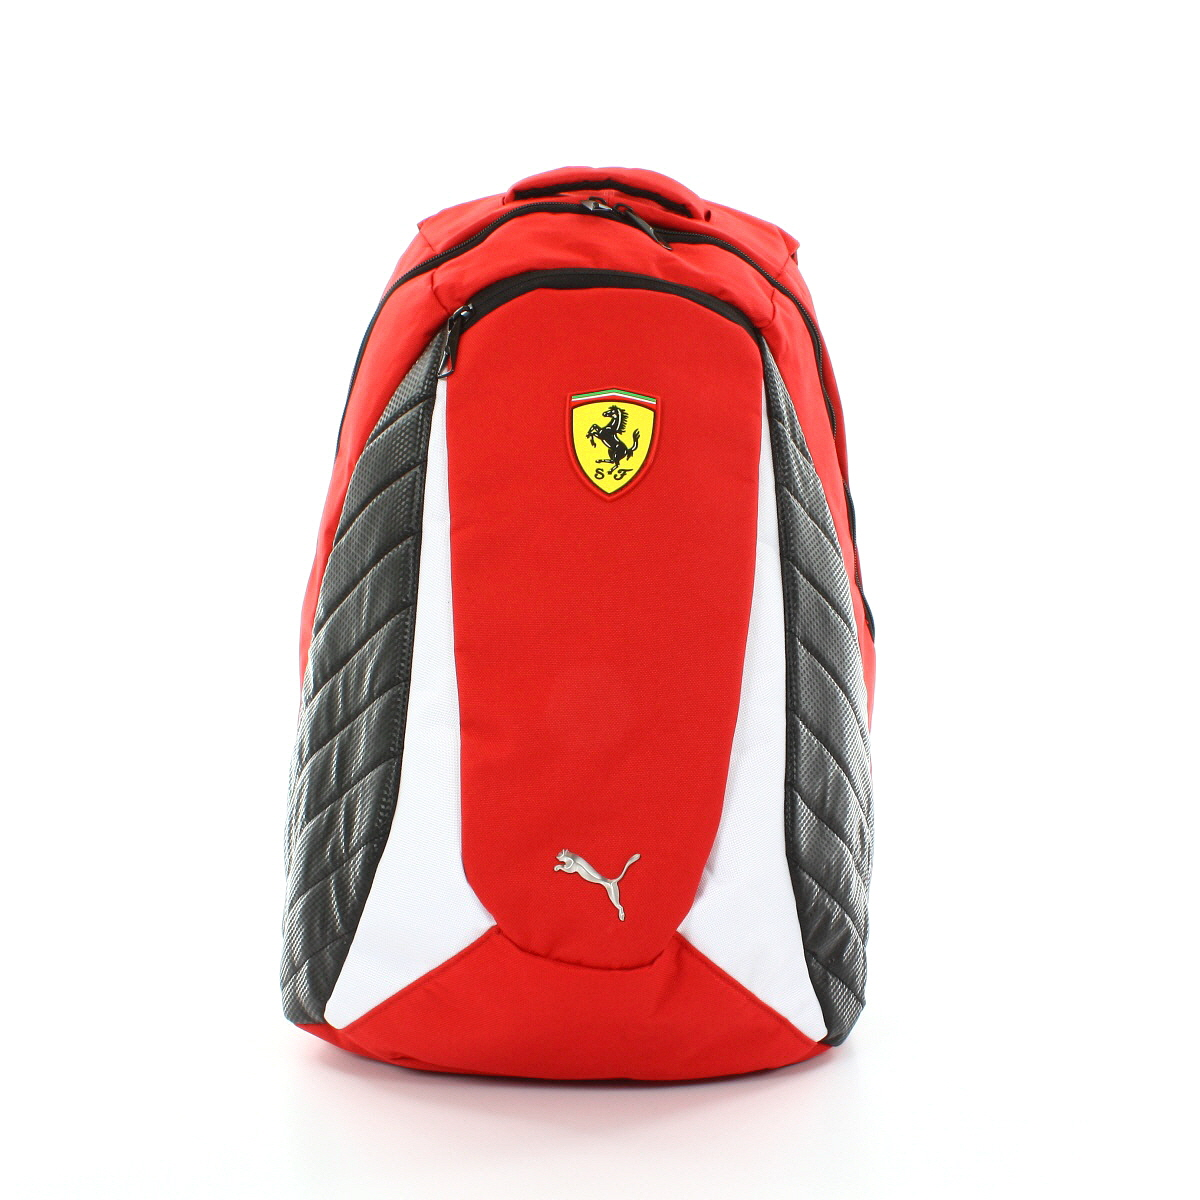 puma ferrari replica. Black Bedroom Furniture Sets. Home Design Ideas